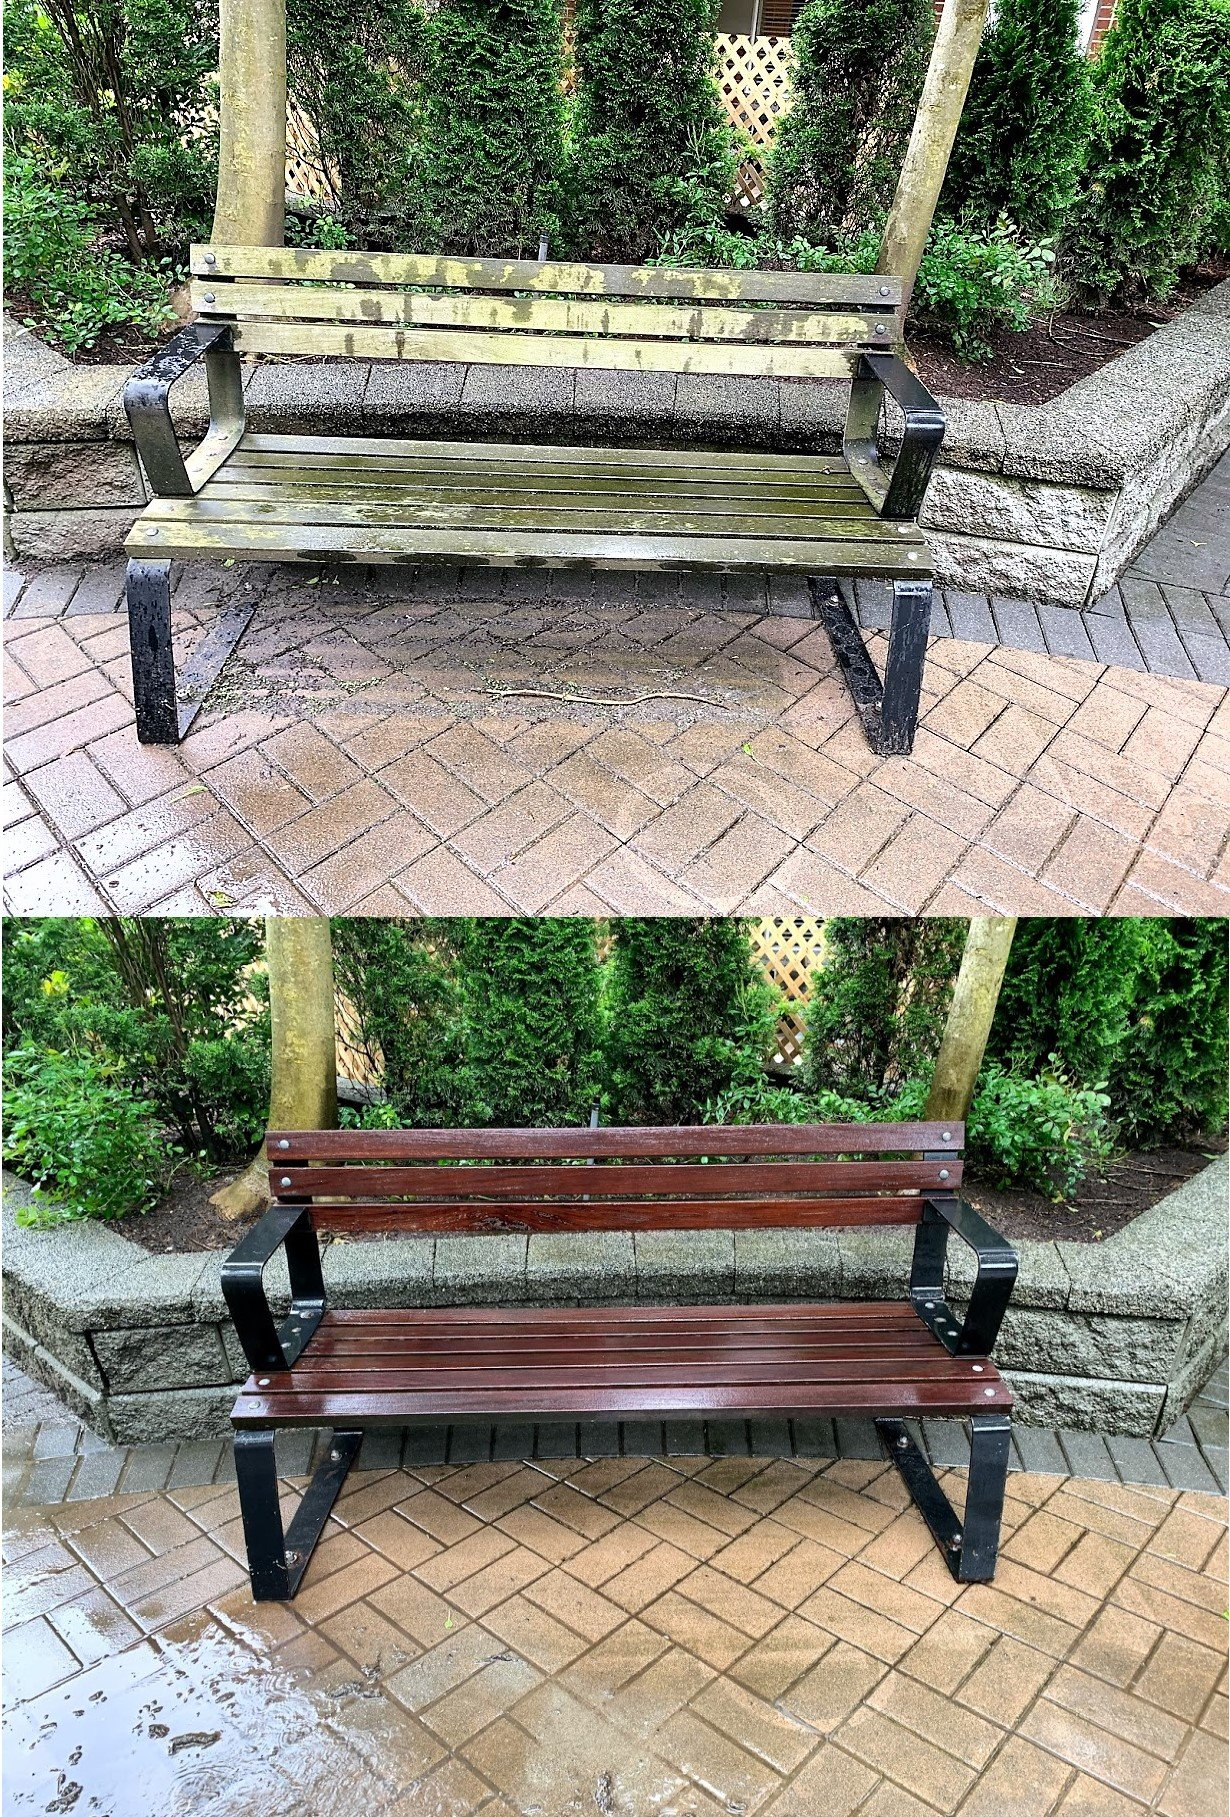 https://0901.nccdn.net/4_2/000/000/07a/dbb/bench.before.after.2020.jpg